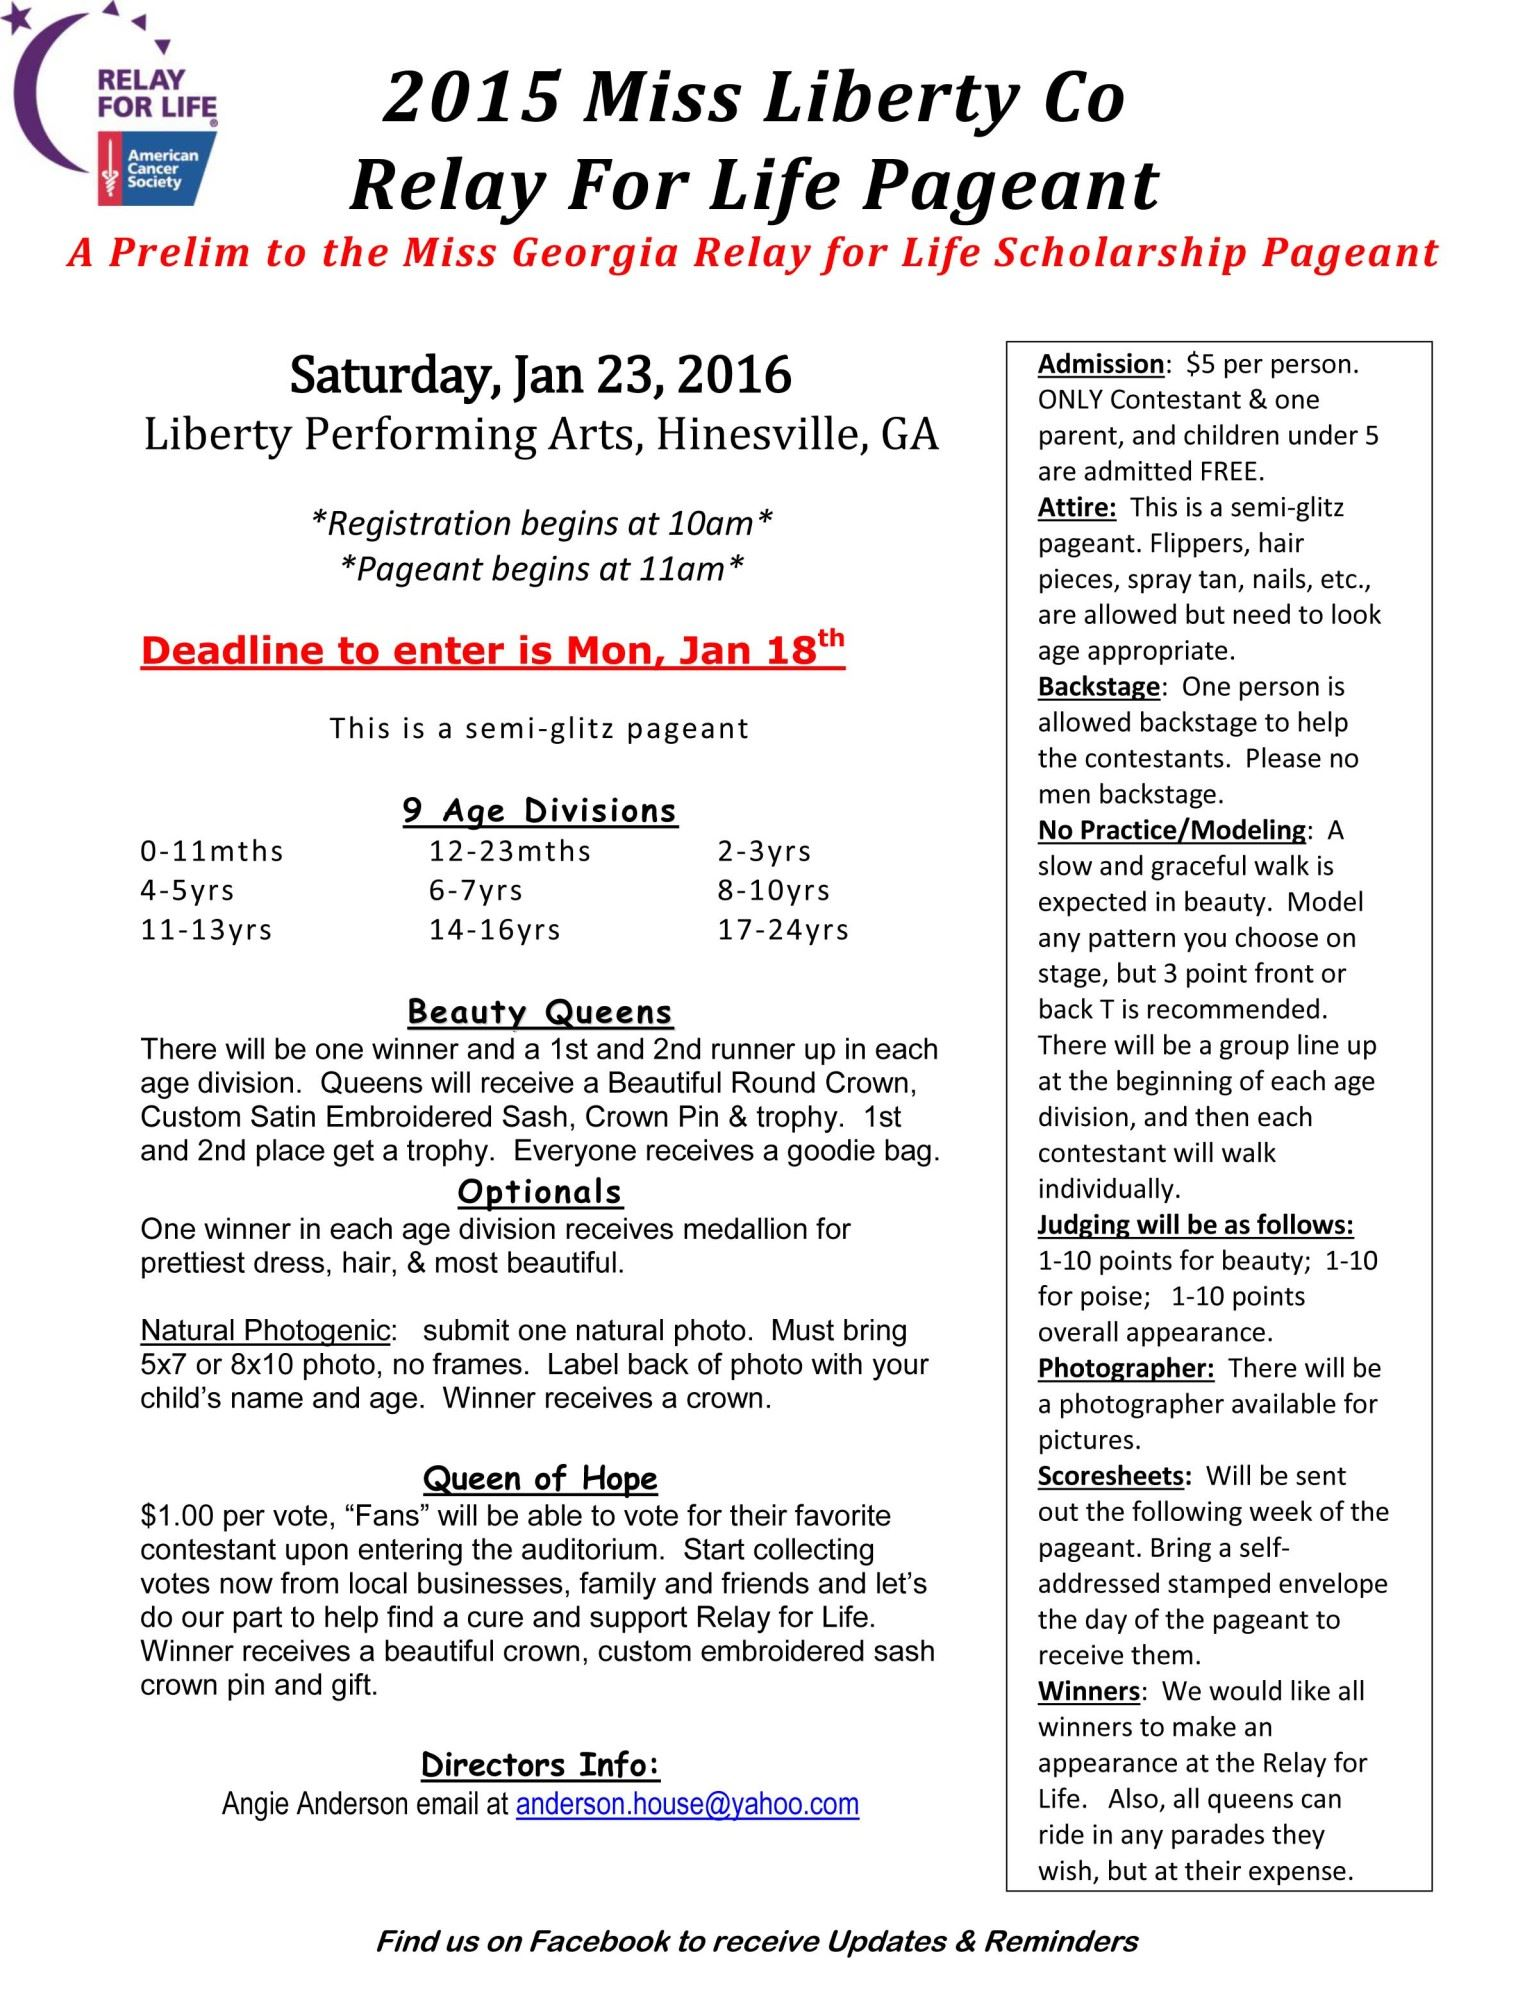 Download Application Here: Emcee Sheet 2015 Miss Liberty County Relay For  Life Pageantliberty County